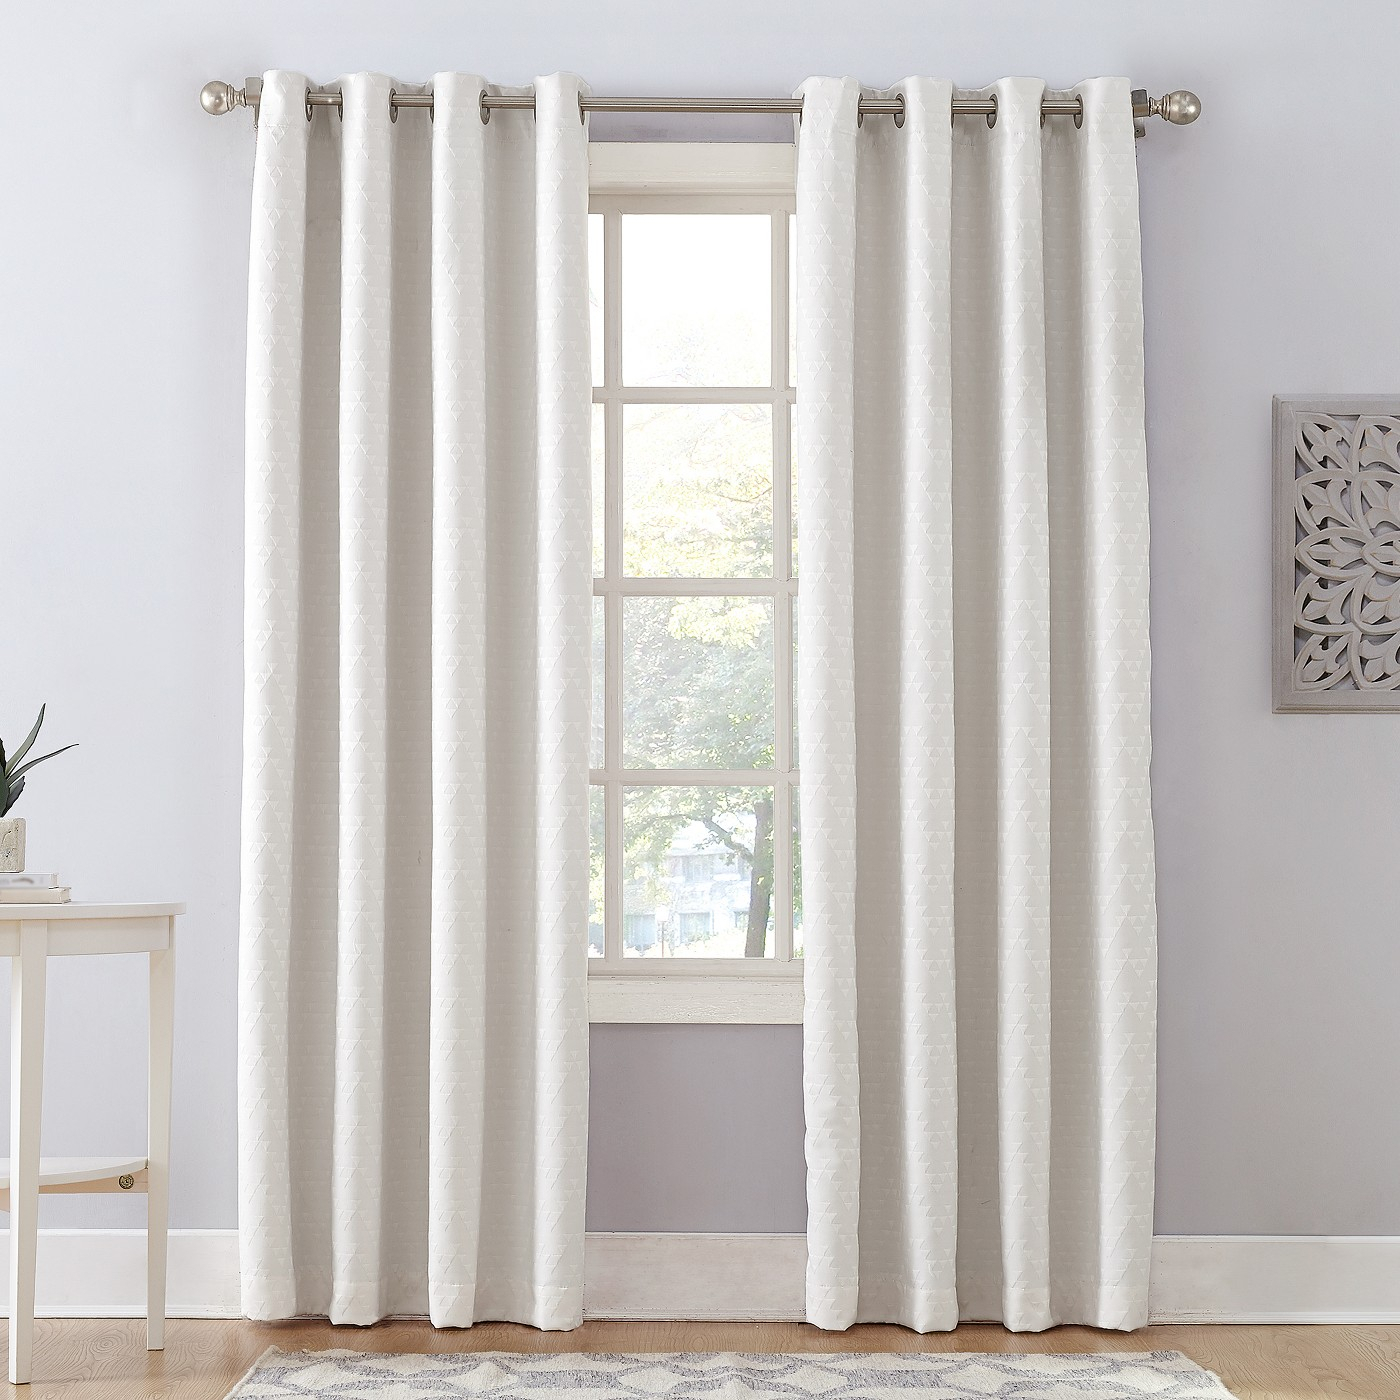 Sun Zero Corinne Woven Geometric Blackout Lined Grommet Curtain Panel – White, 52x84 Inside Geometric Print Textured Thermal Insulated Grommet Curtain Panels (View 18 of 20)